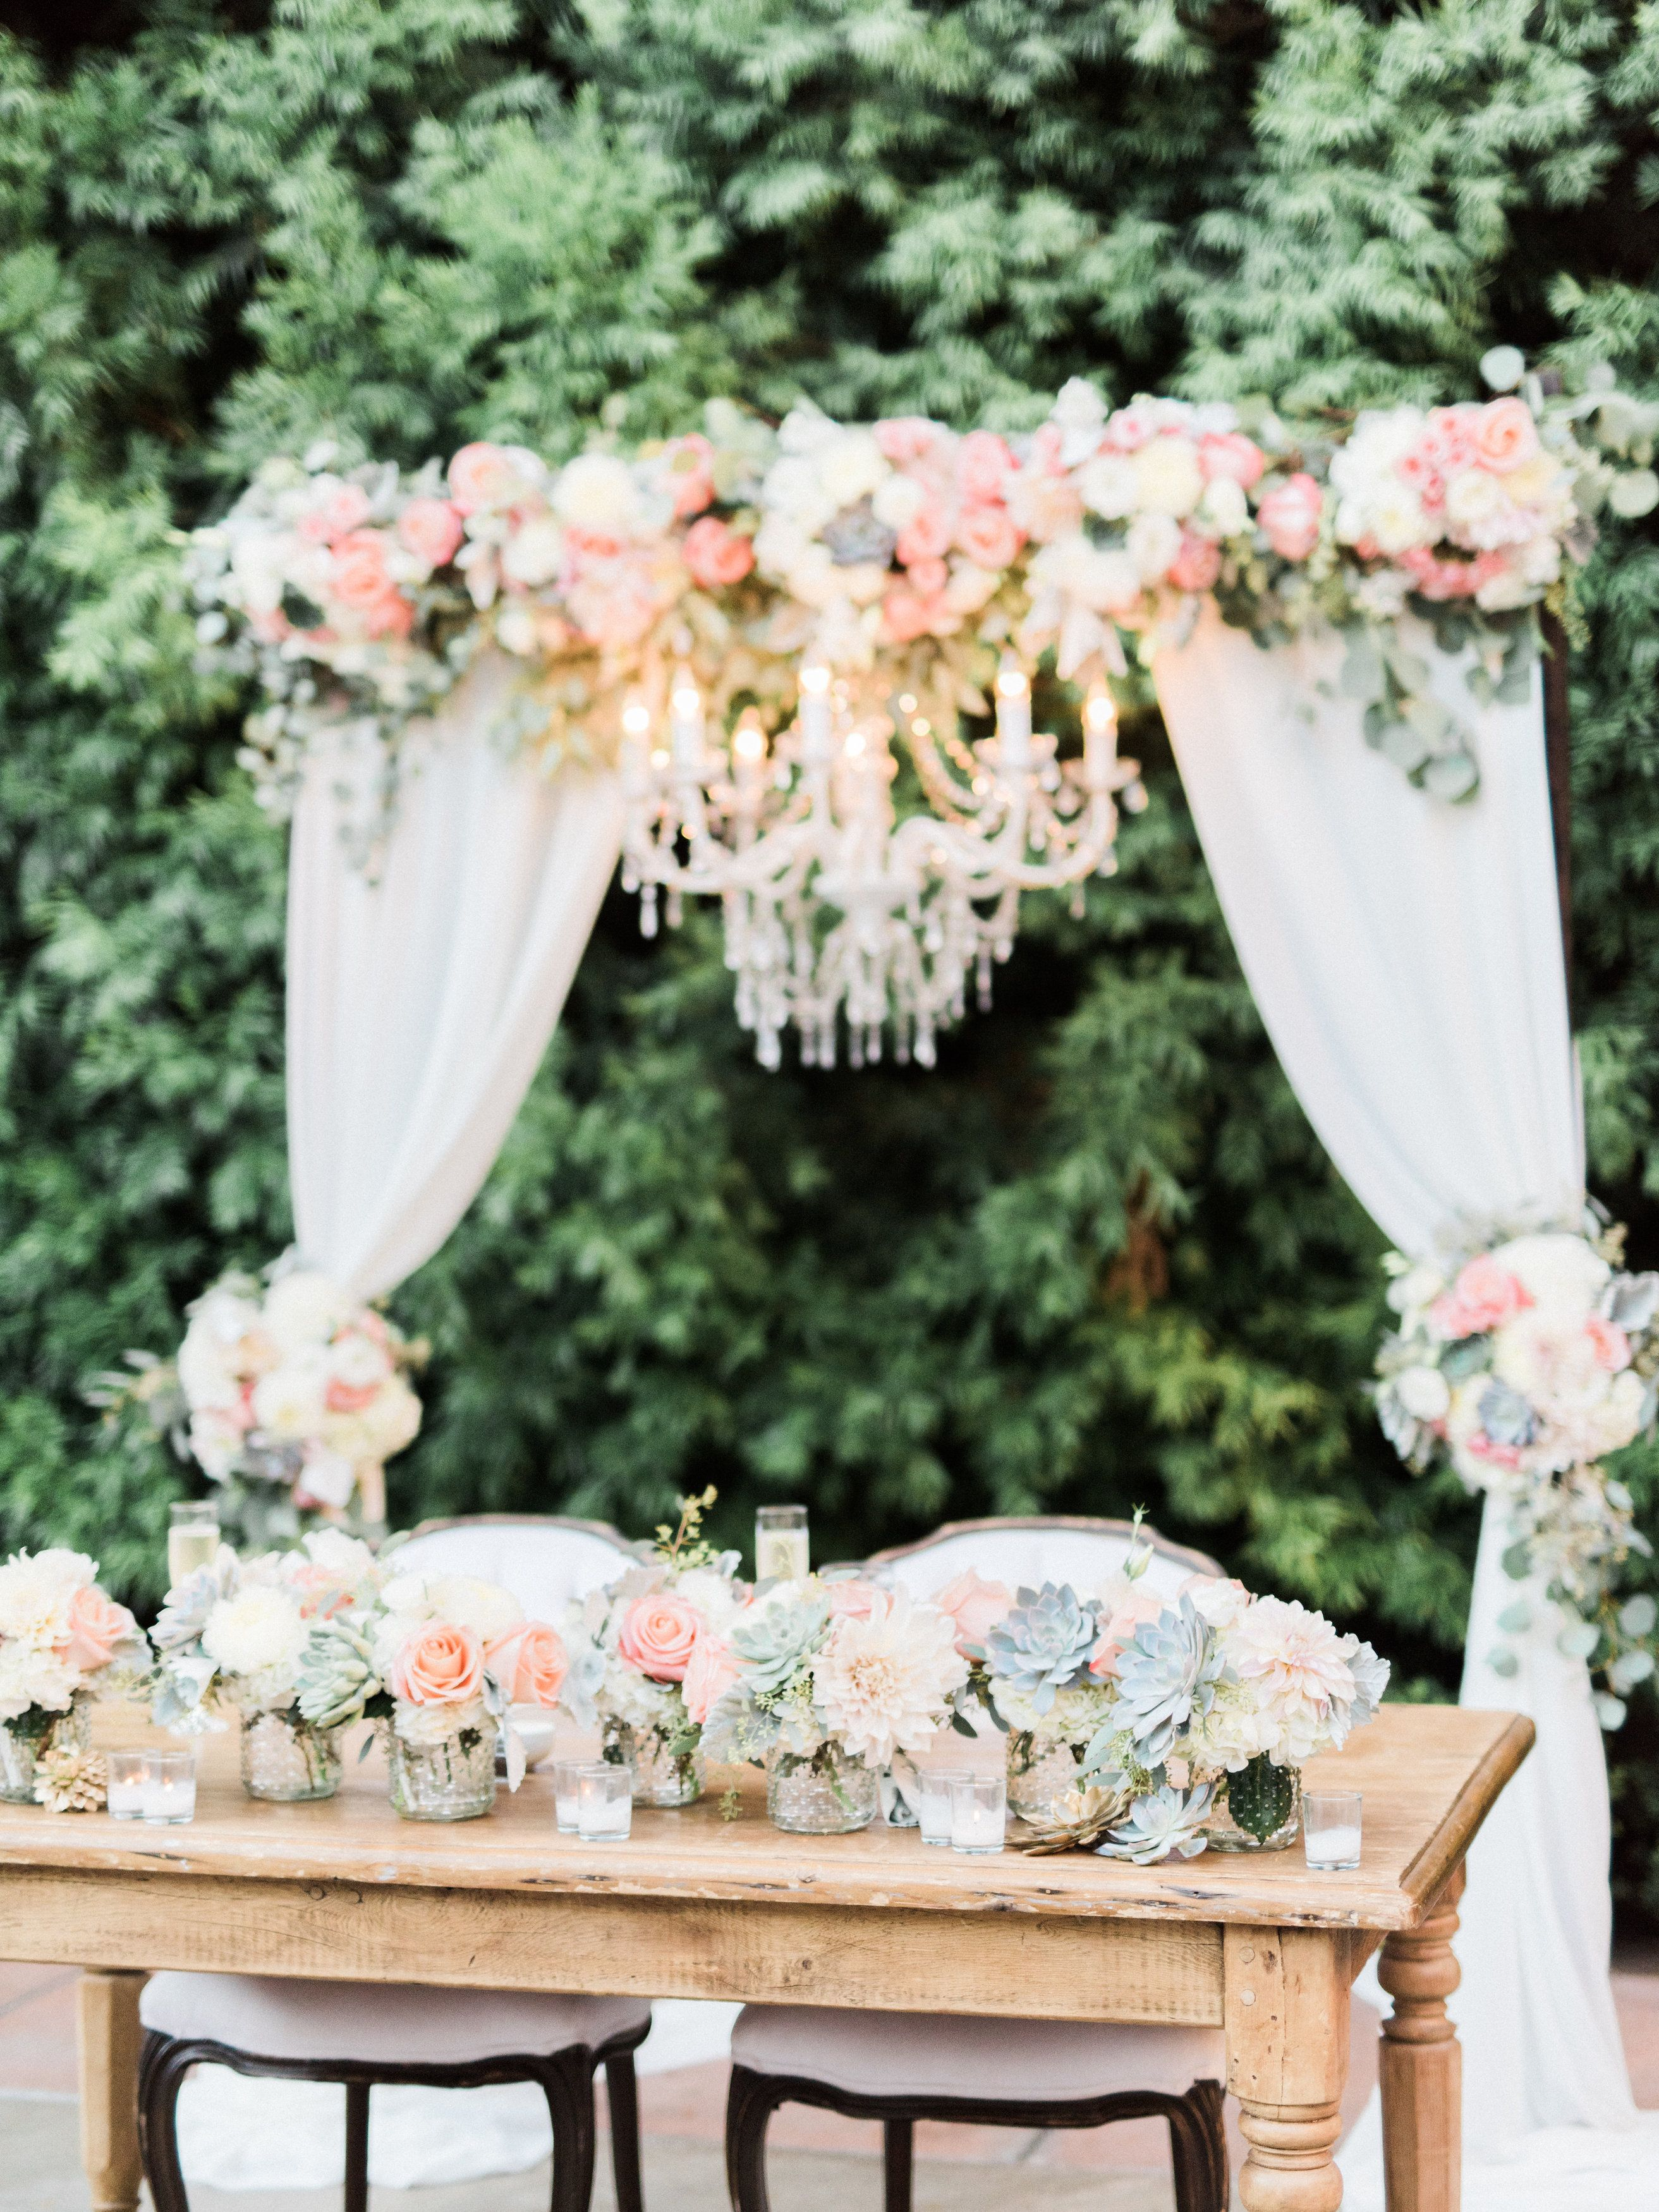 Wedding arch with fabric and chandelier sweetheart table flowers wedding arch with fabric and chandelier sweetheart table flowers coral peach mint ivory succulents roses dahlias florals by jenny honey honey junglespirit Choice Image